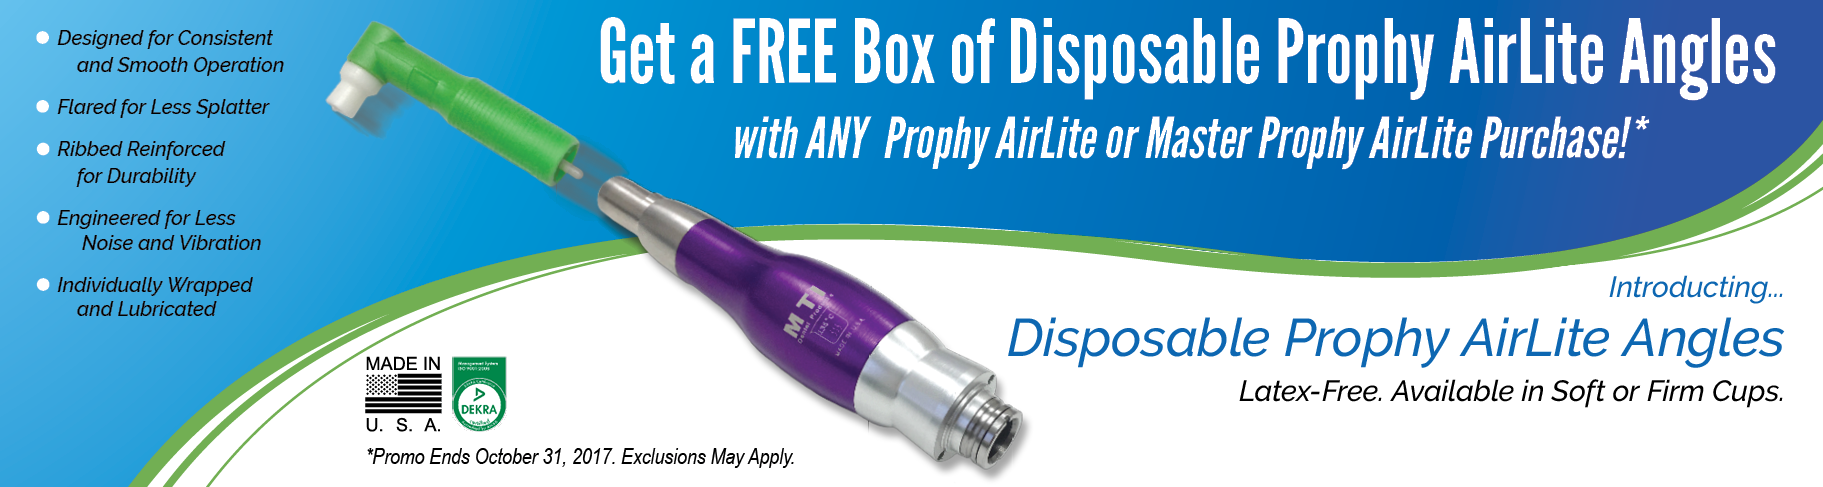 Free Disposable Prophy AirLite Angles with any Prophy AirLite or Master Prophy AirLite Purchase.